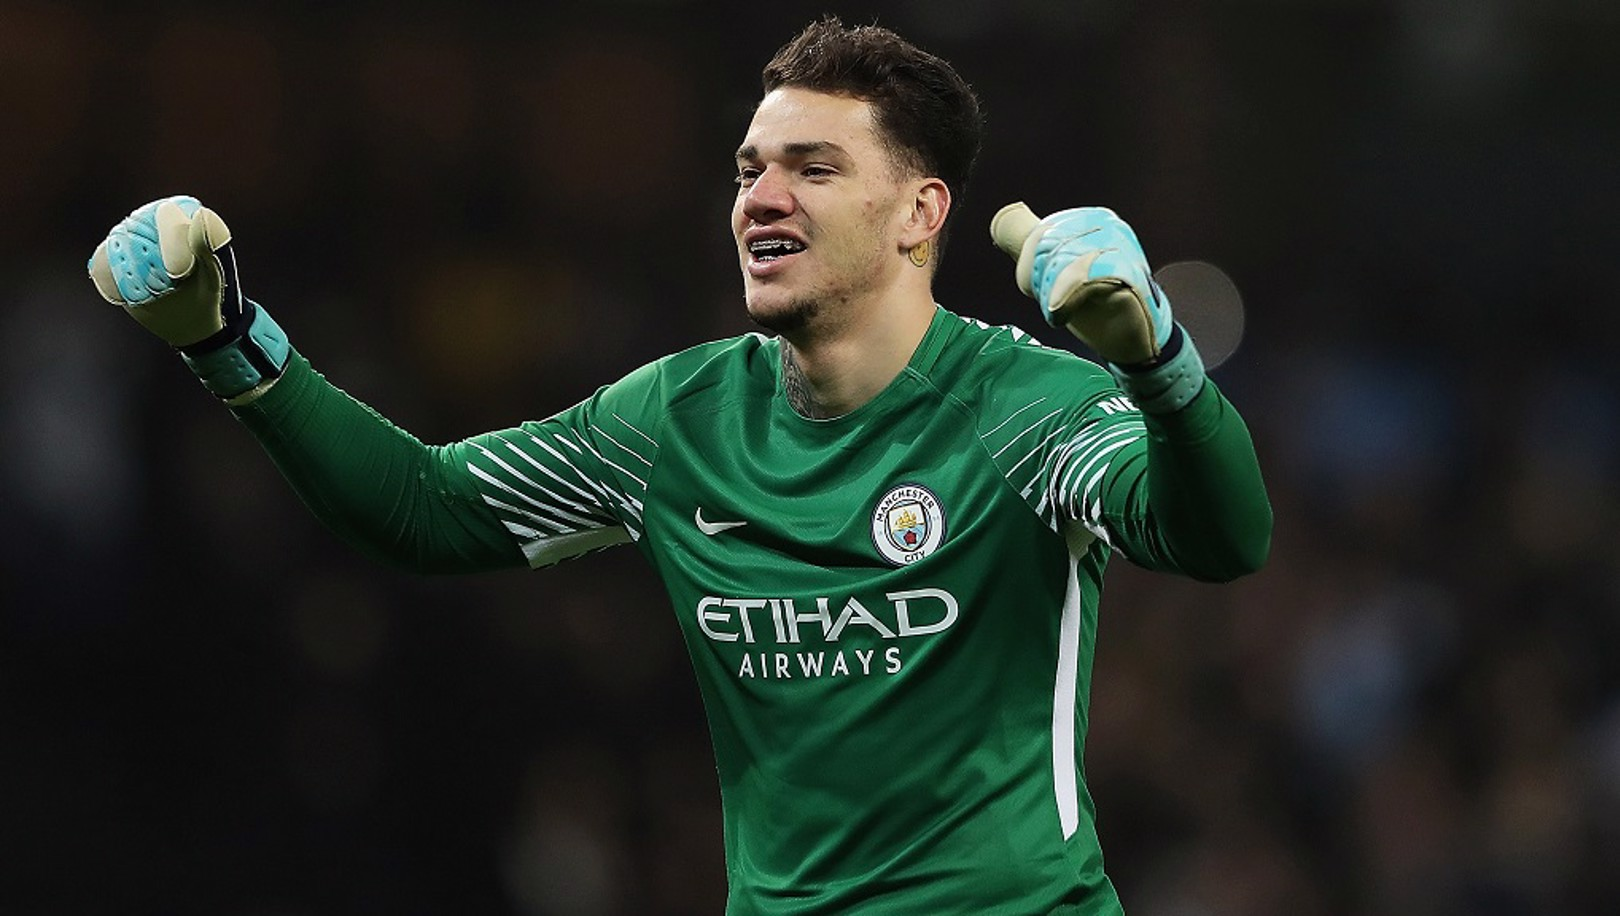 Ederson: In a league of his own